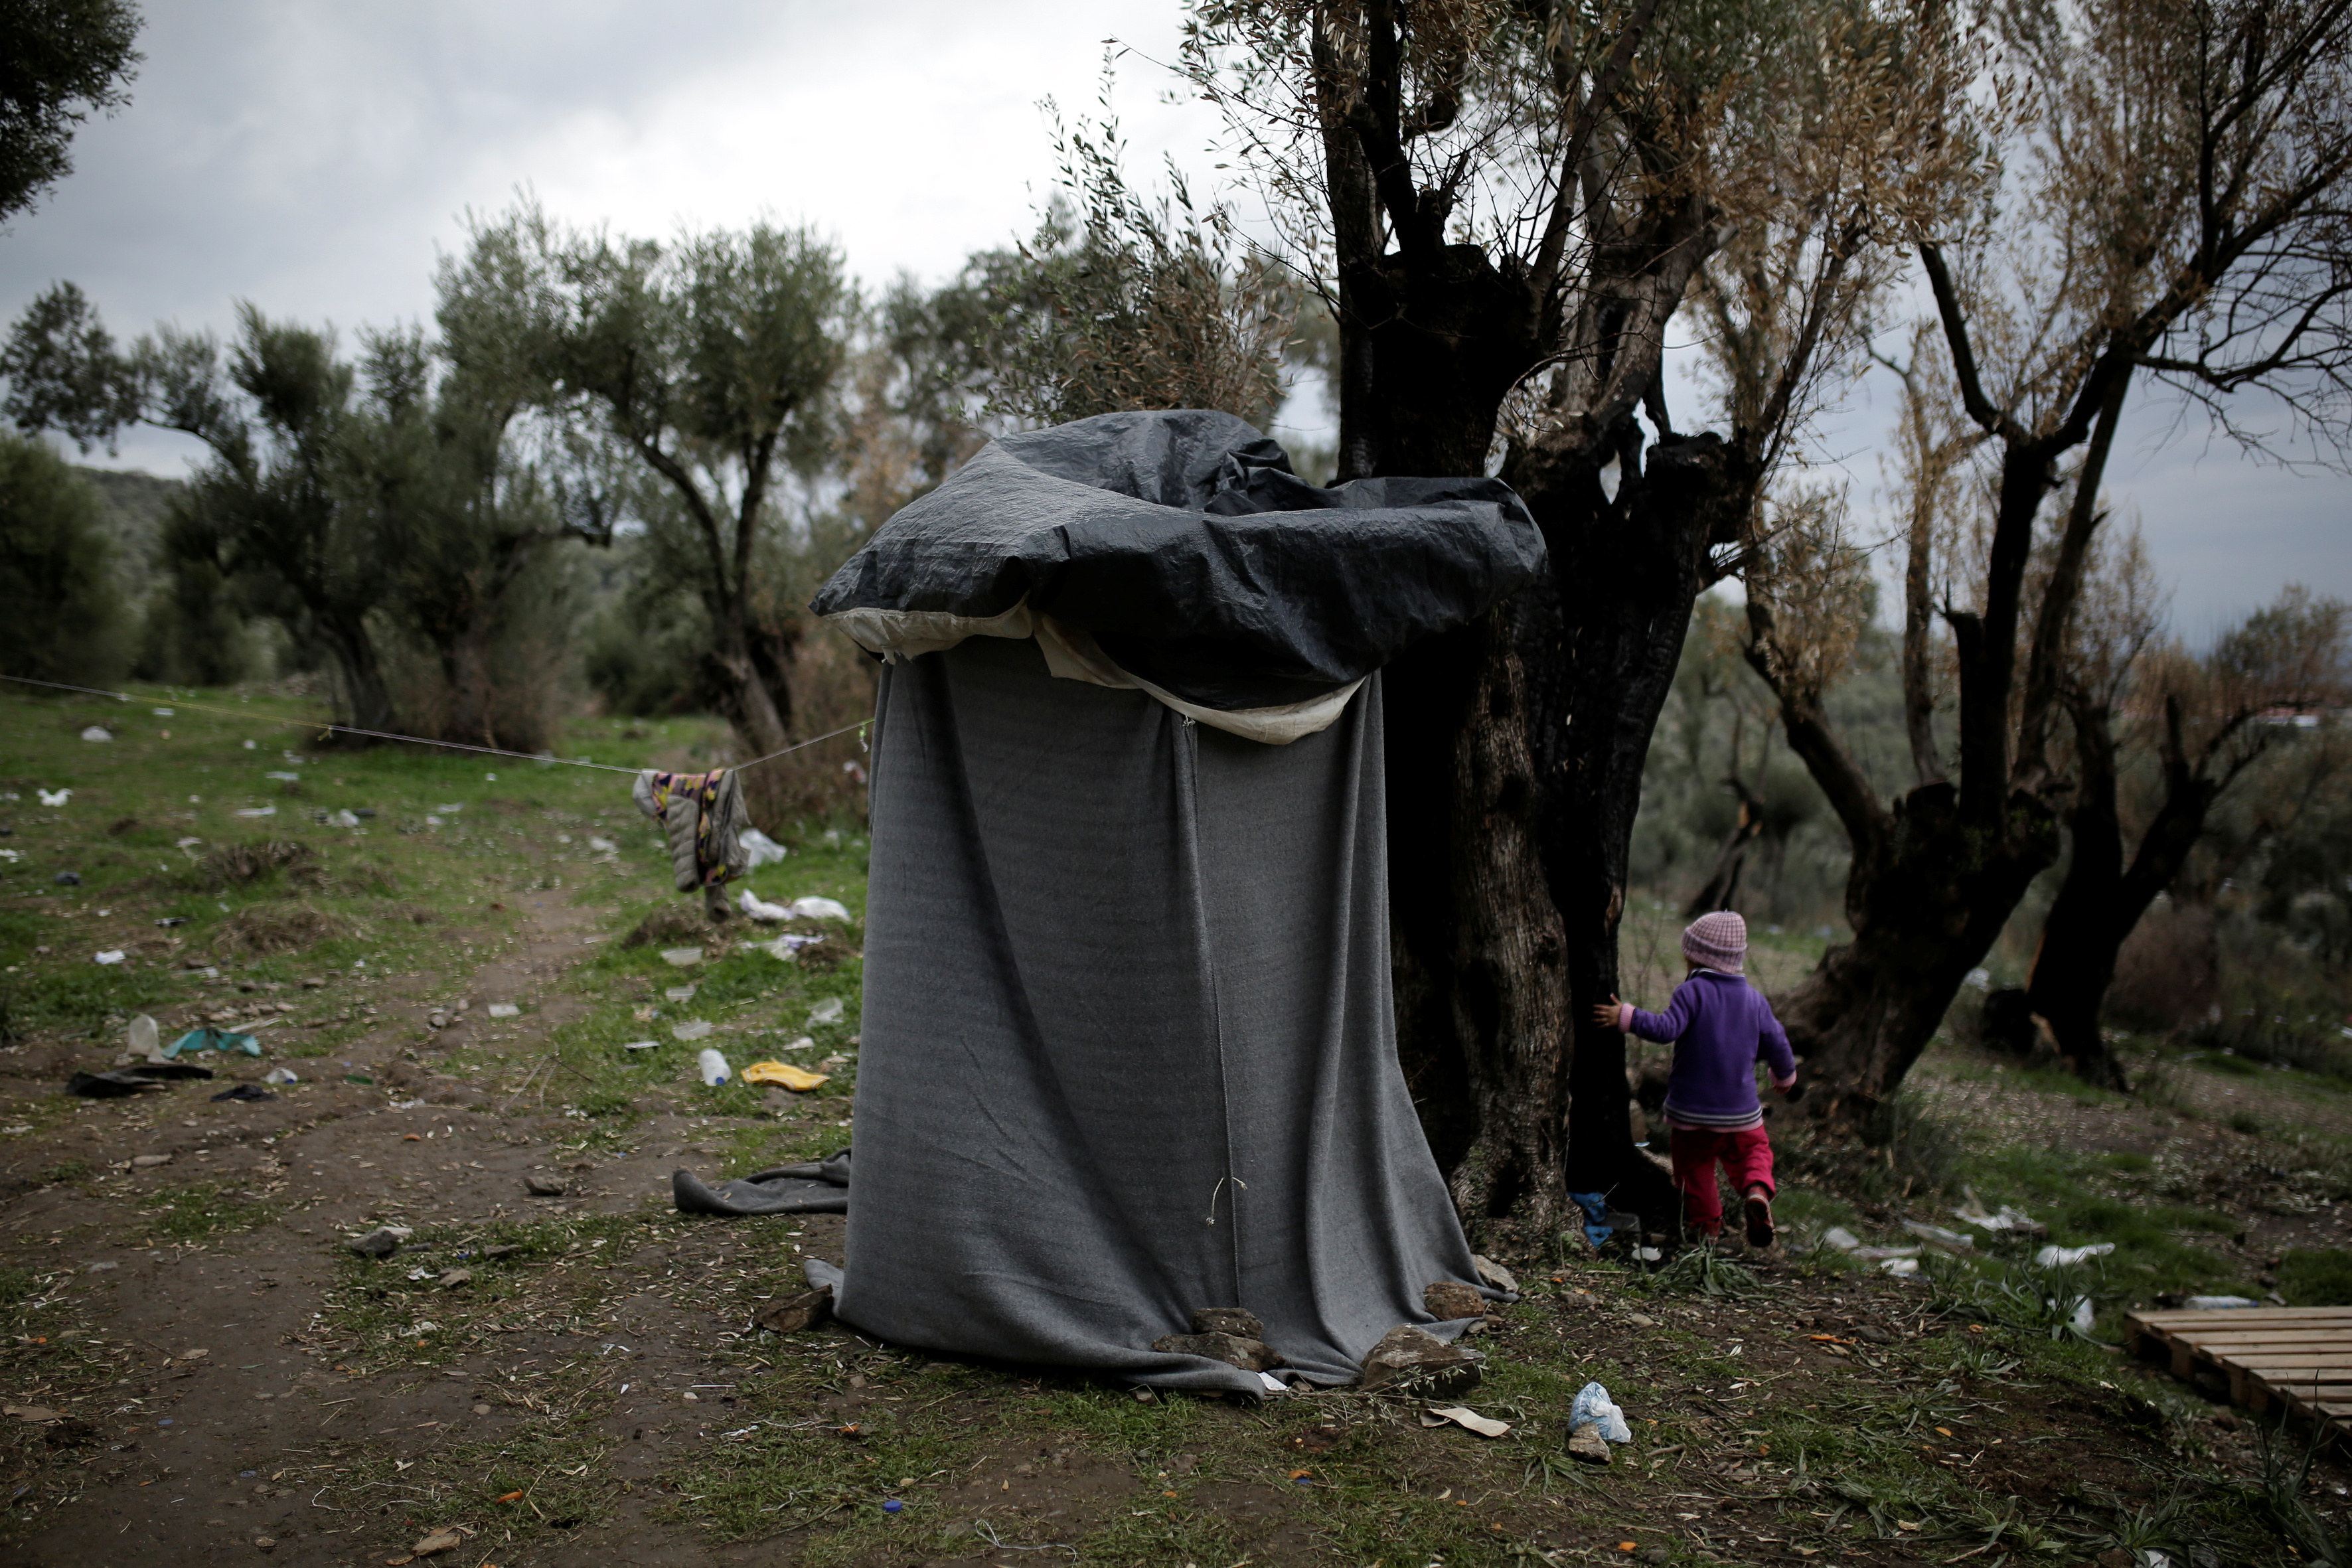 A girl walks next to a self-made shower at a makeshift camp for refugees and migrants next to the Moria camp on the island of Lesbos, Greece, Nov. 30, 2017.